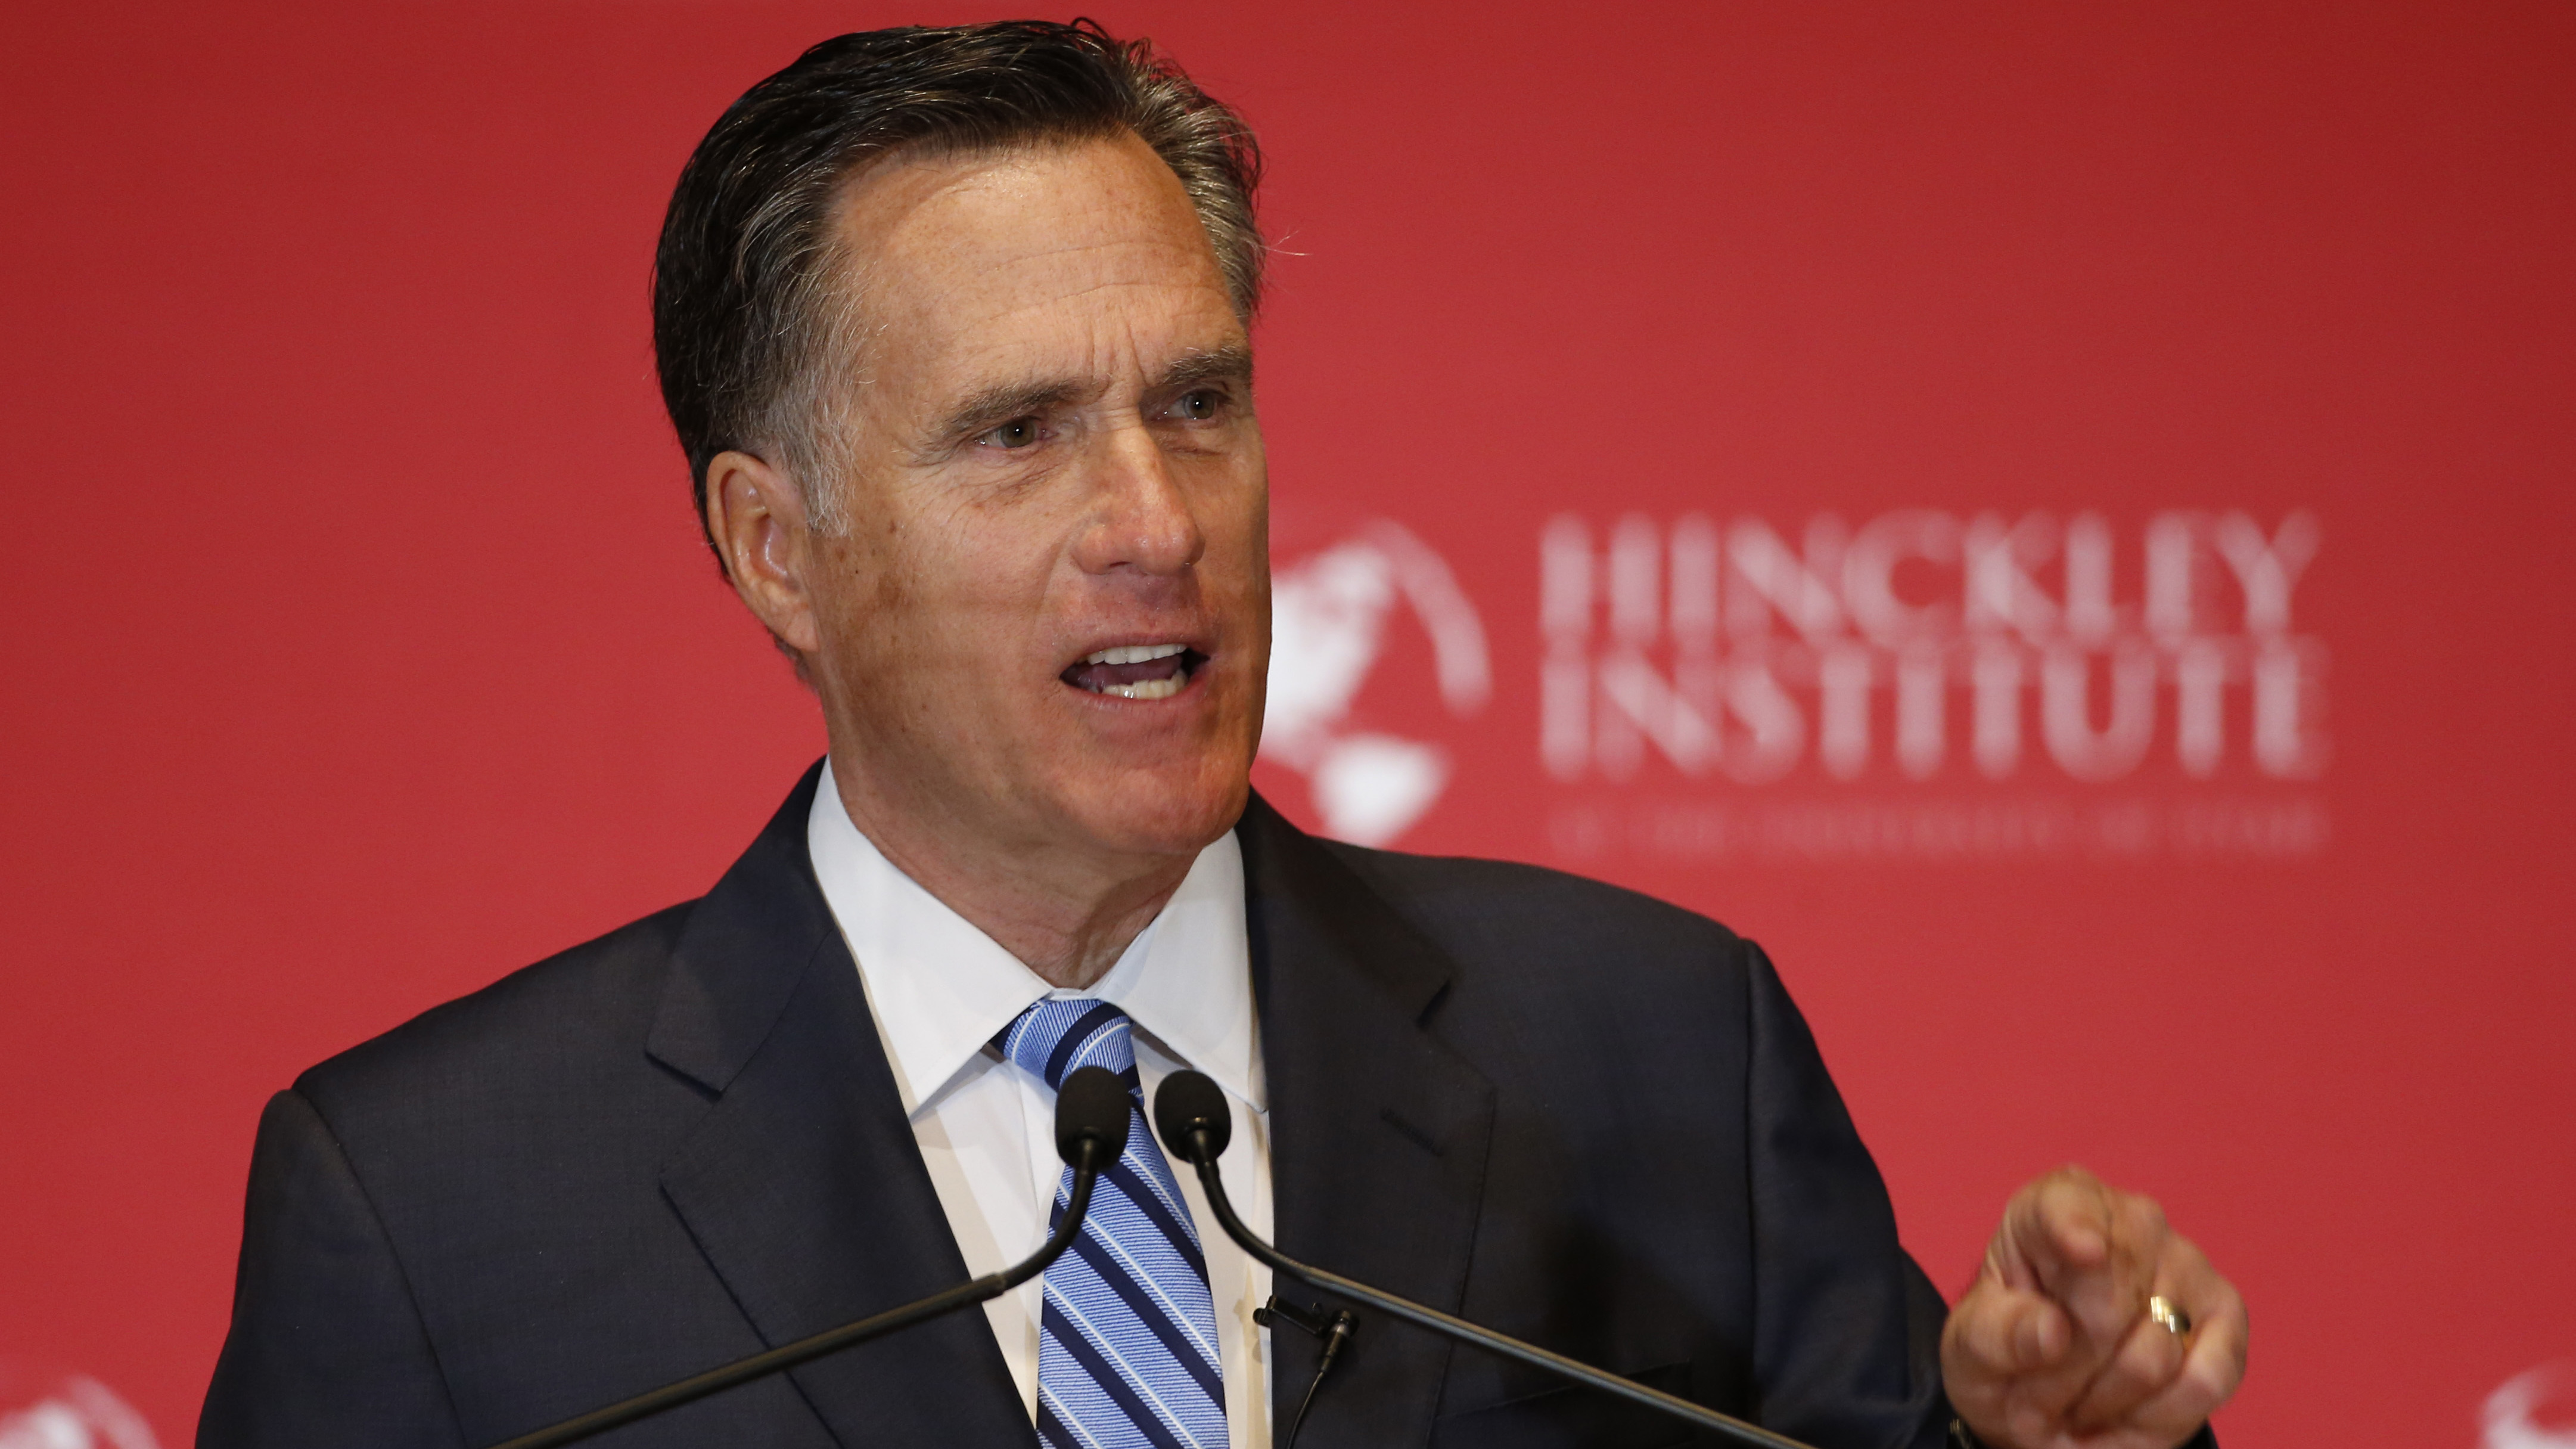 Former Massachusetts Gov. Mitt Romney argues against Donald Trump's nomination as the GOP presidential candidate on March 3 in Salt Lake City, Utah. George Frey/Getty Images